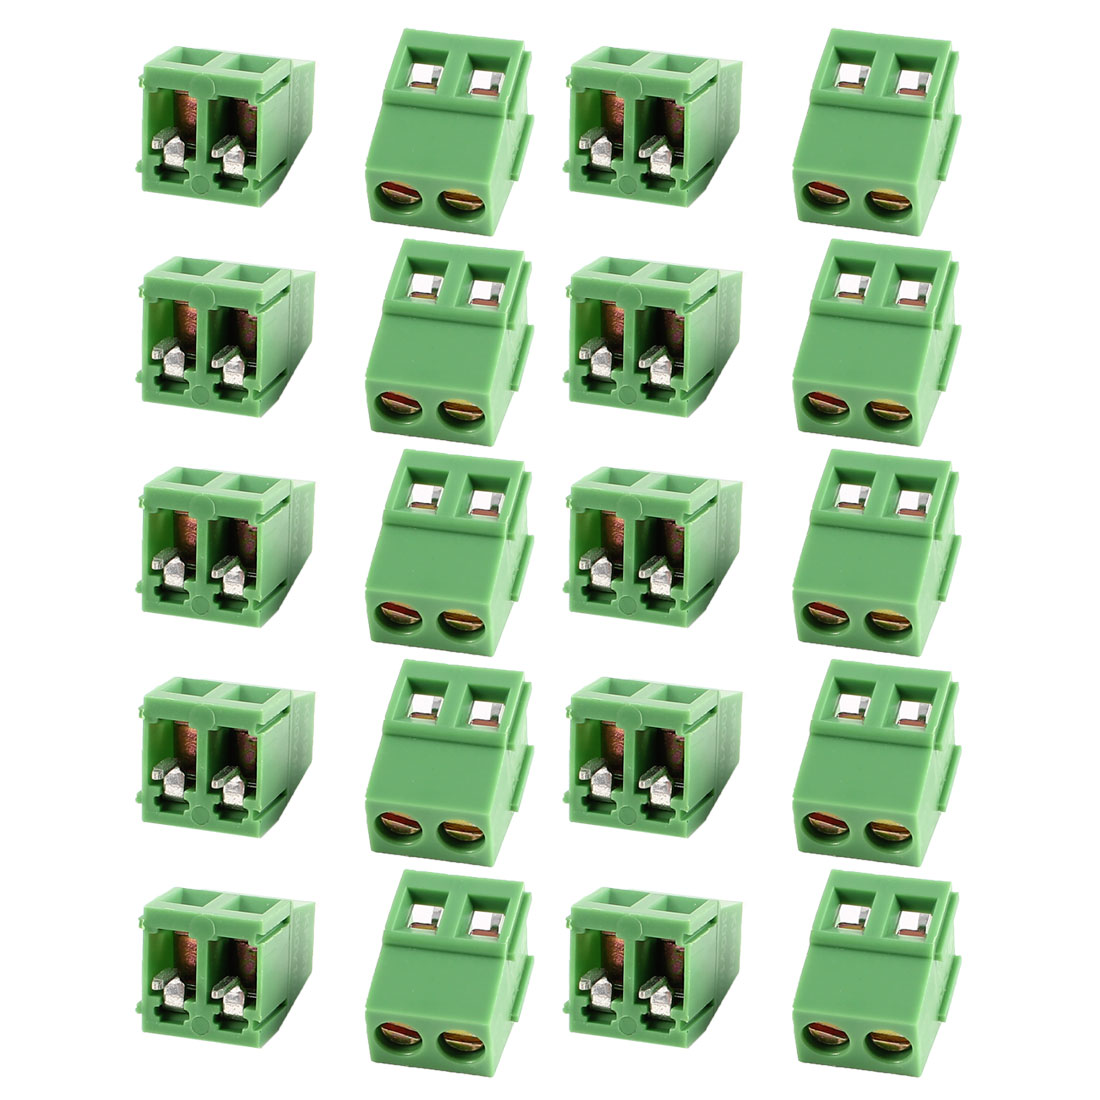 20 Pcs Green 2 Pole 5mm Spacing PCB Mount Screw Terminal Block 10A 300V AWG24-12